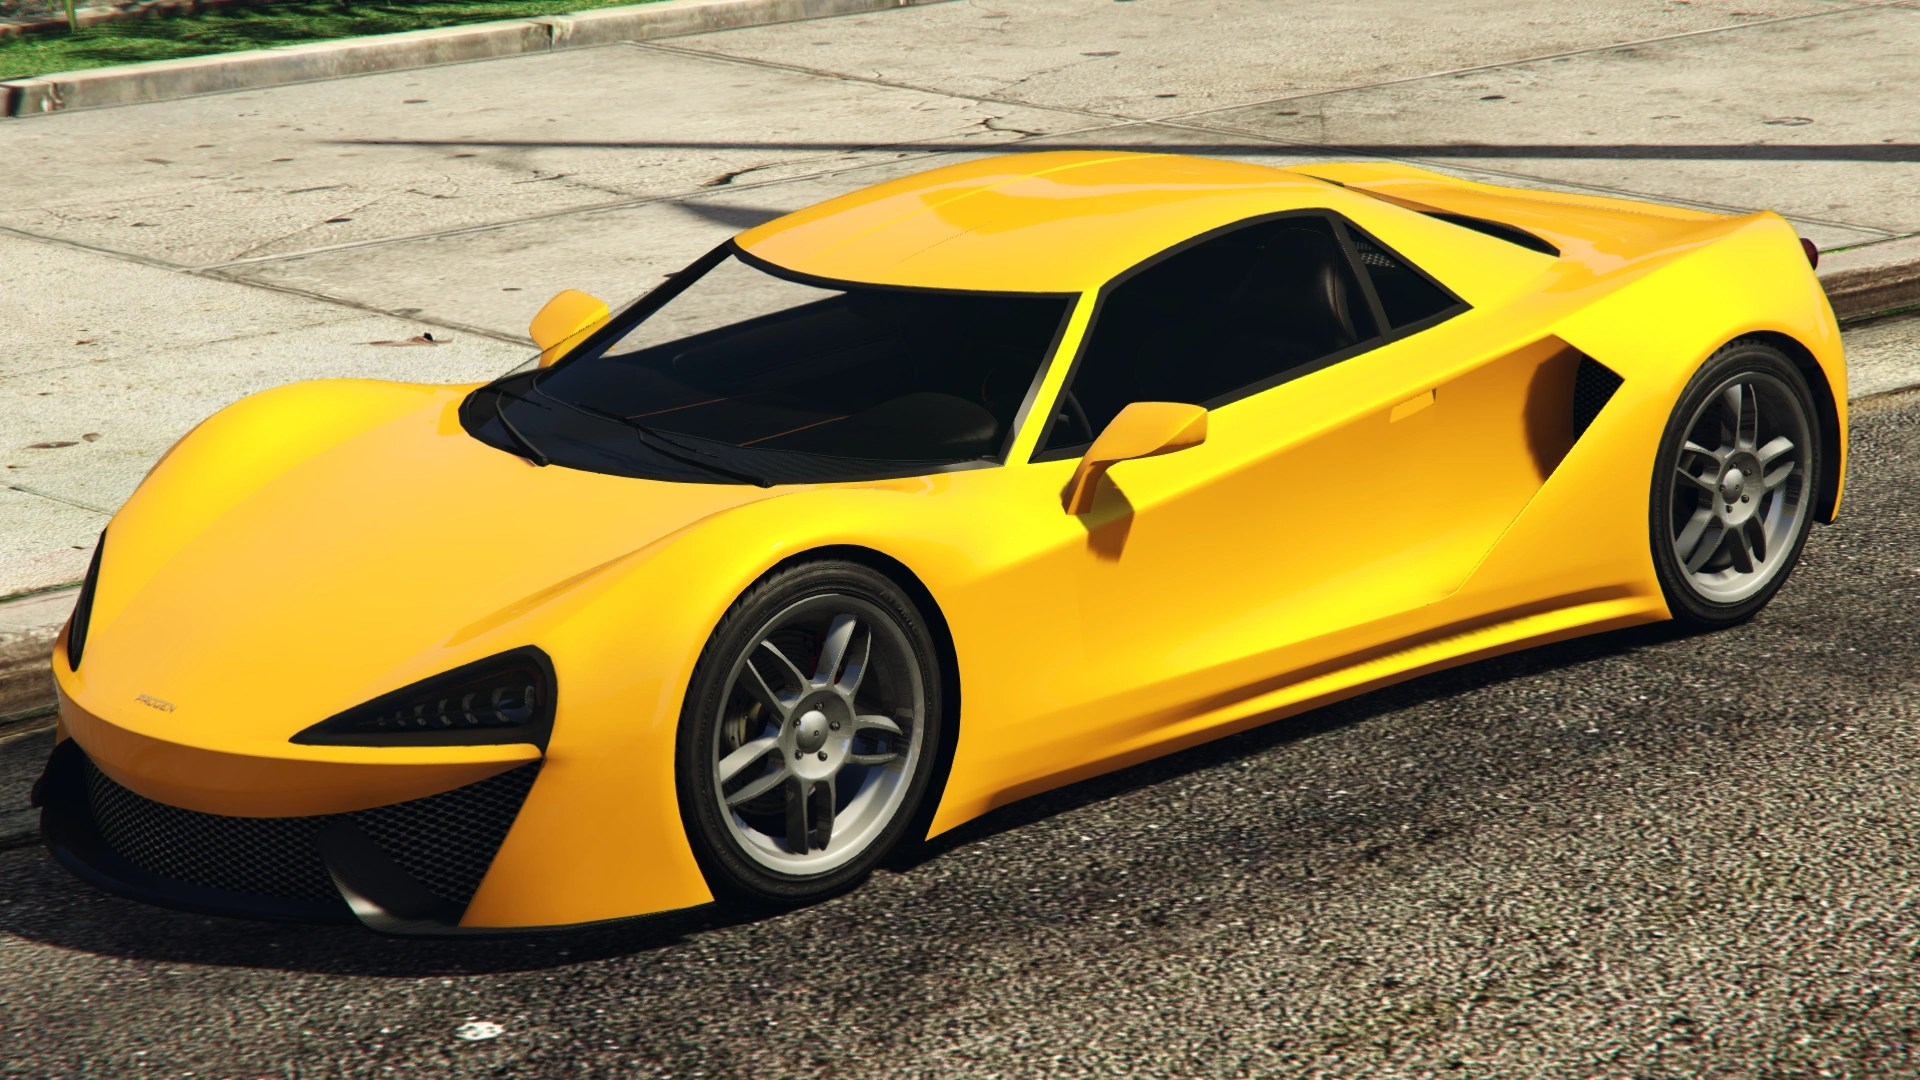 Pegassi Zentorno Wallpaper Car Itali Gtb Gta Wiki Fandom Powered By Wikia